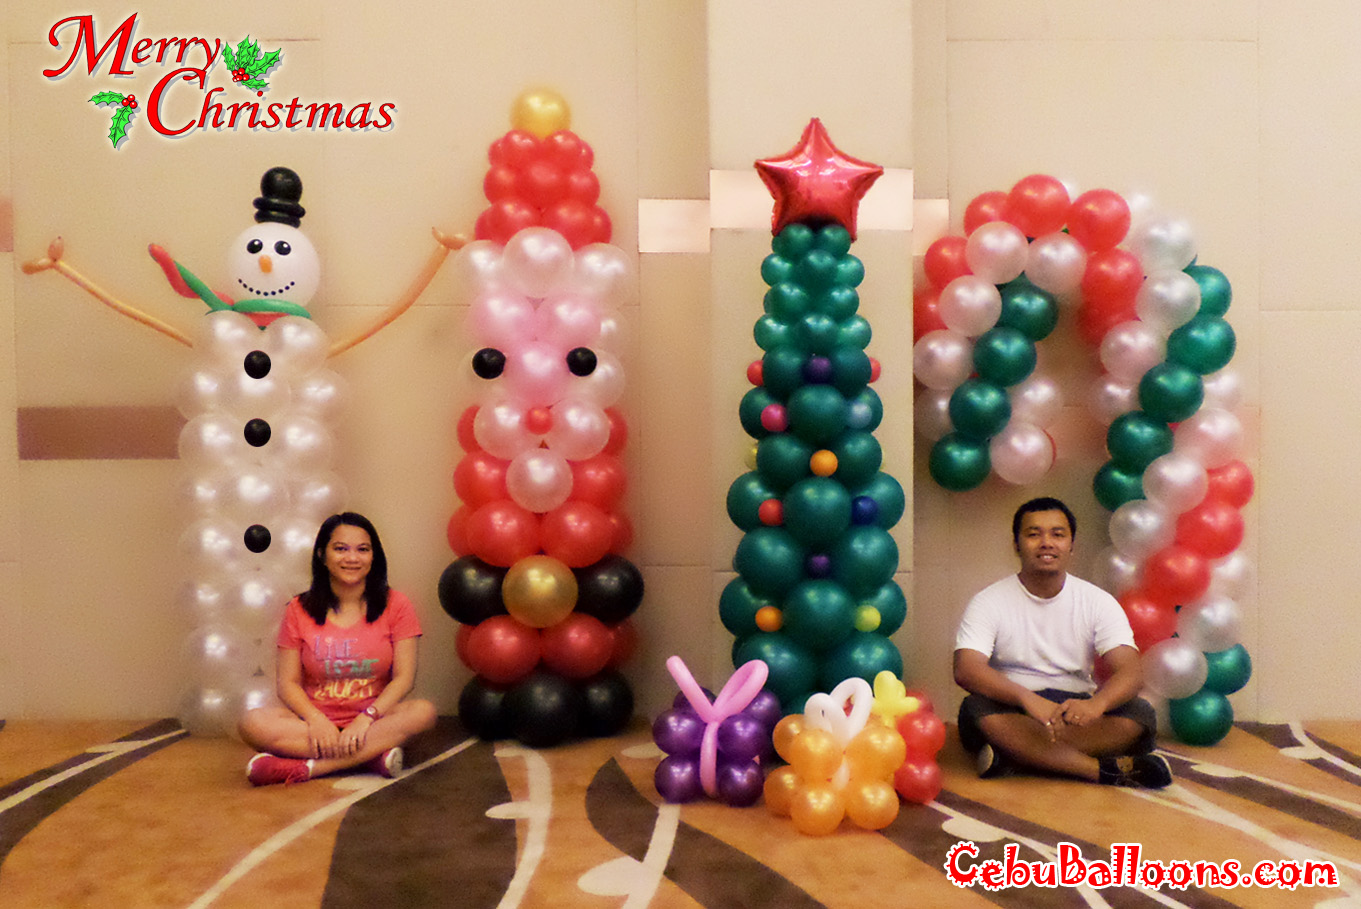 Christmas cebu balloons and party supplies